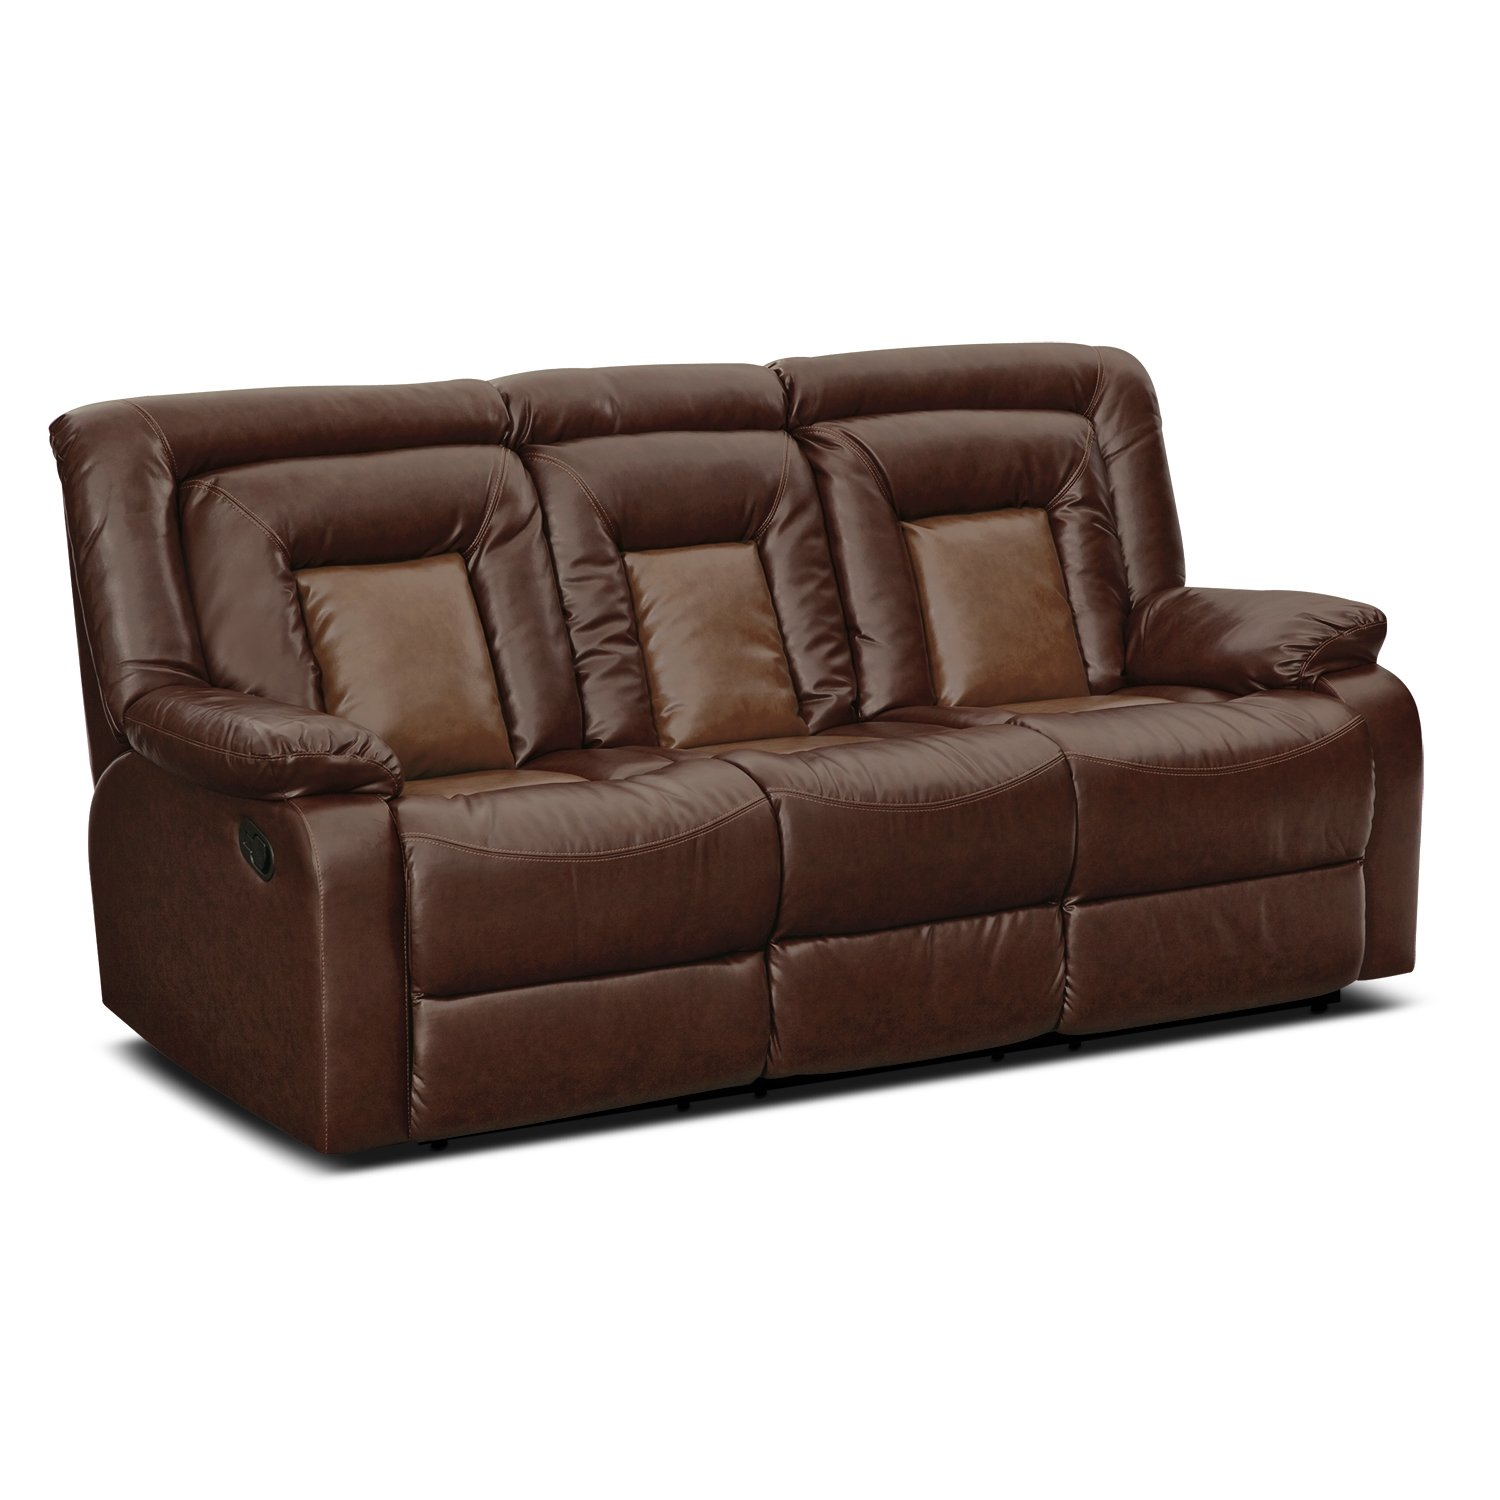 Amazon Roundhill Furniture Kmax 2 Toned PU Dual Reclining